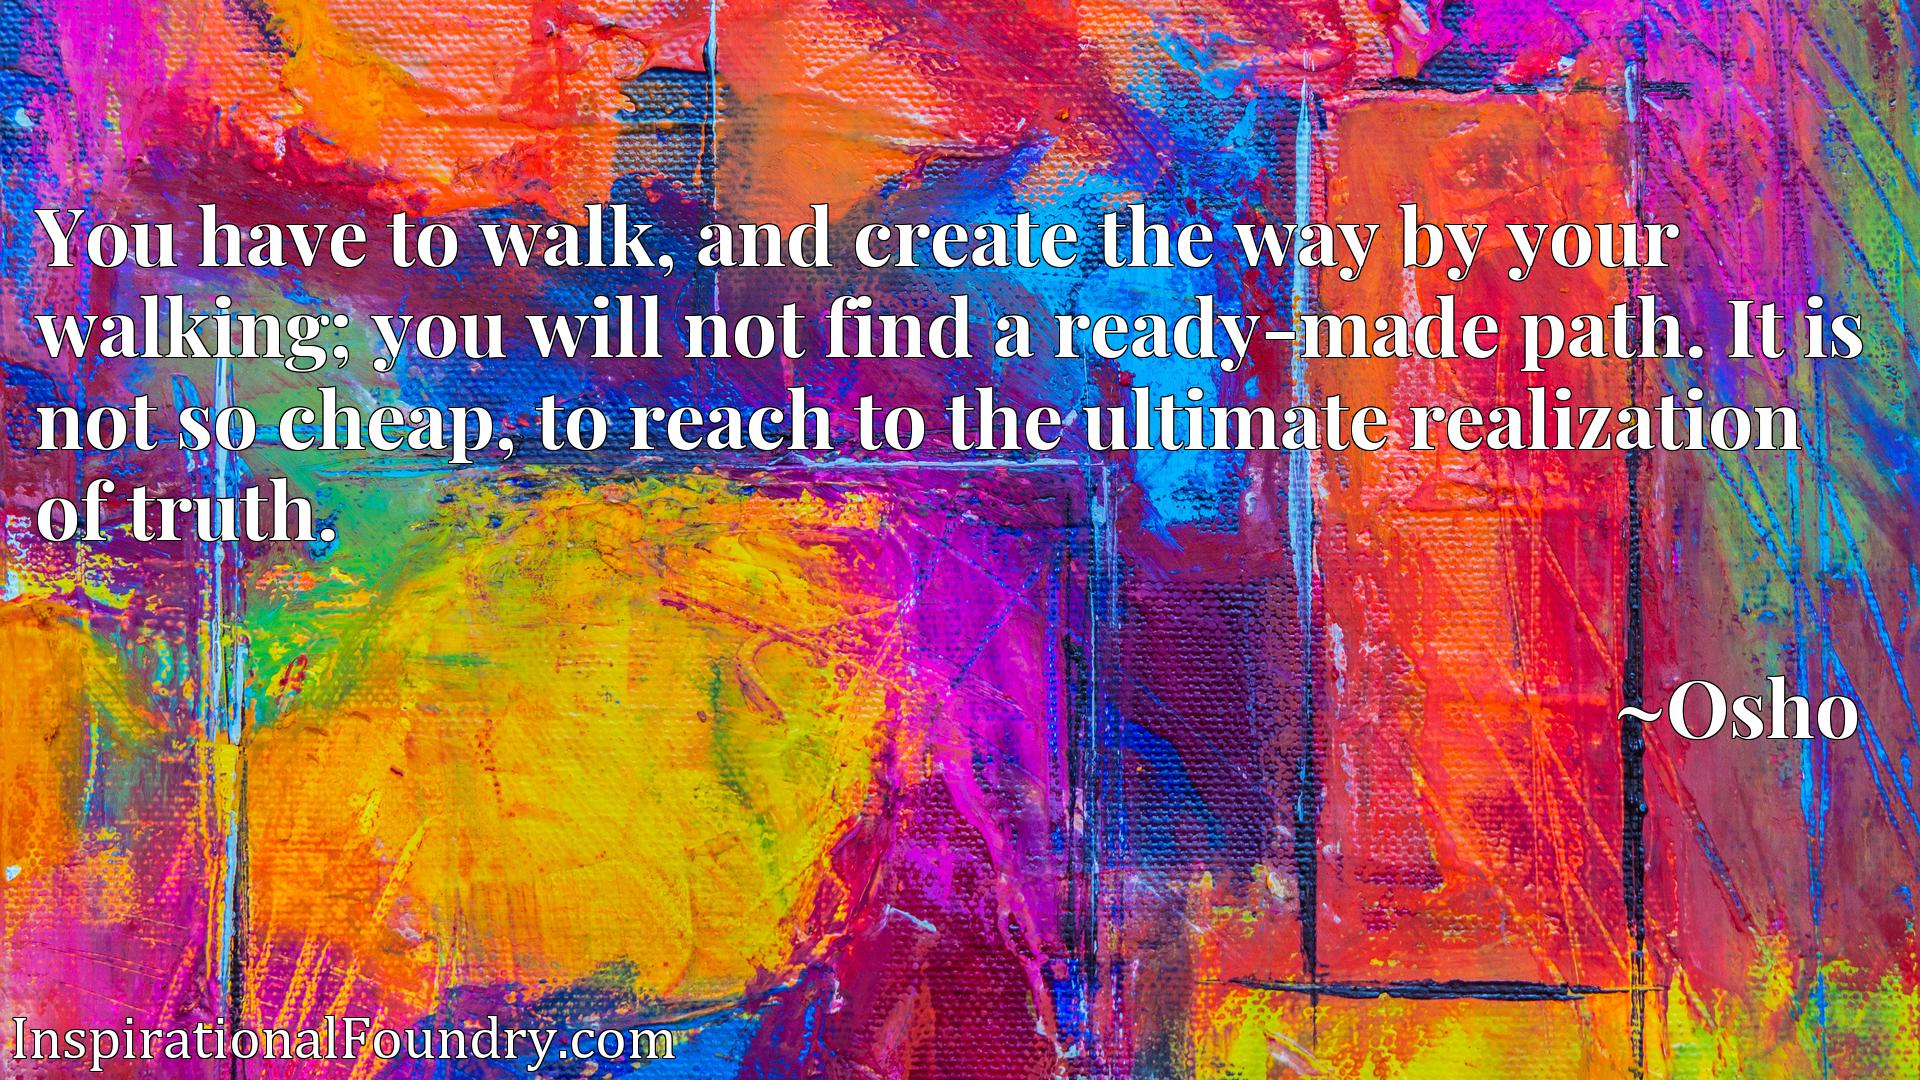 You have to walk, and create the way by your walking; you will not find a ready-made path. It is not so cheap, to reach to the ultimate realization of truth.